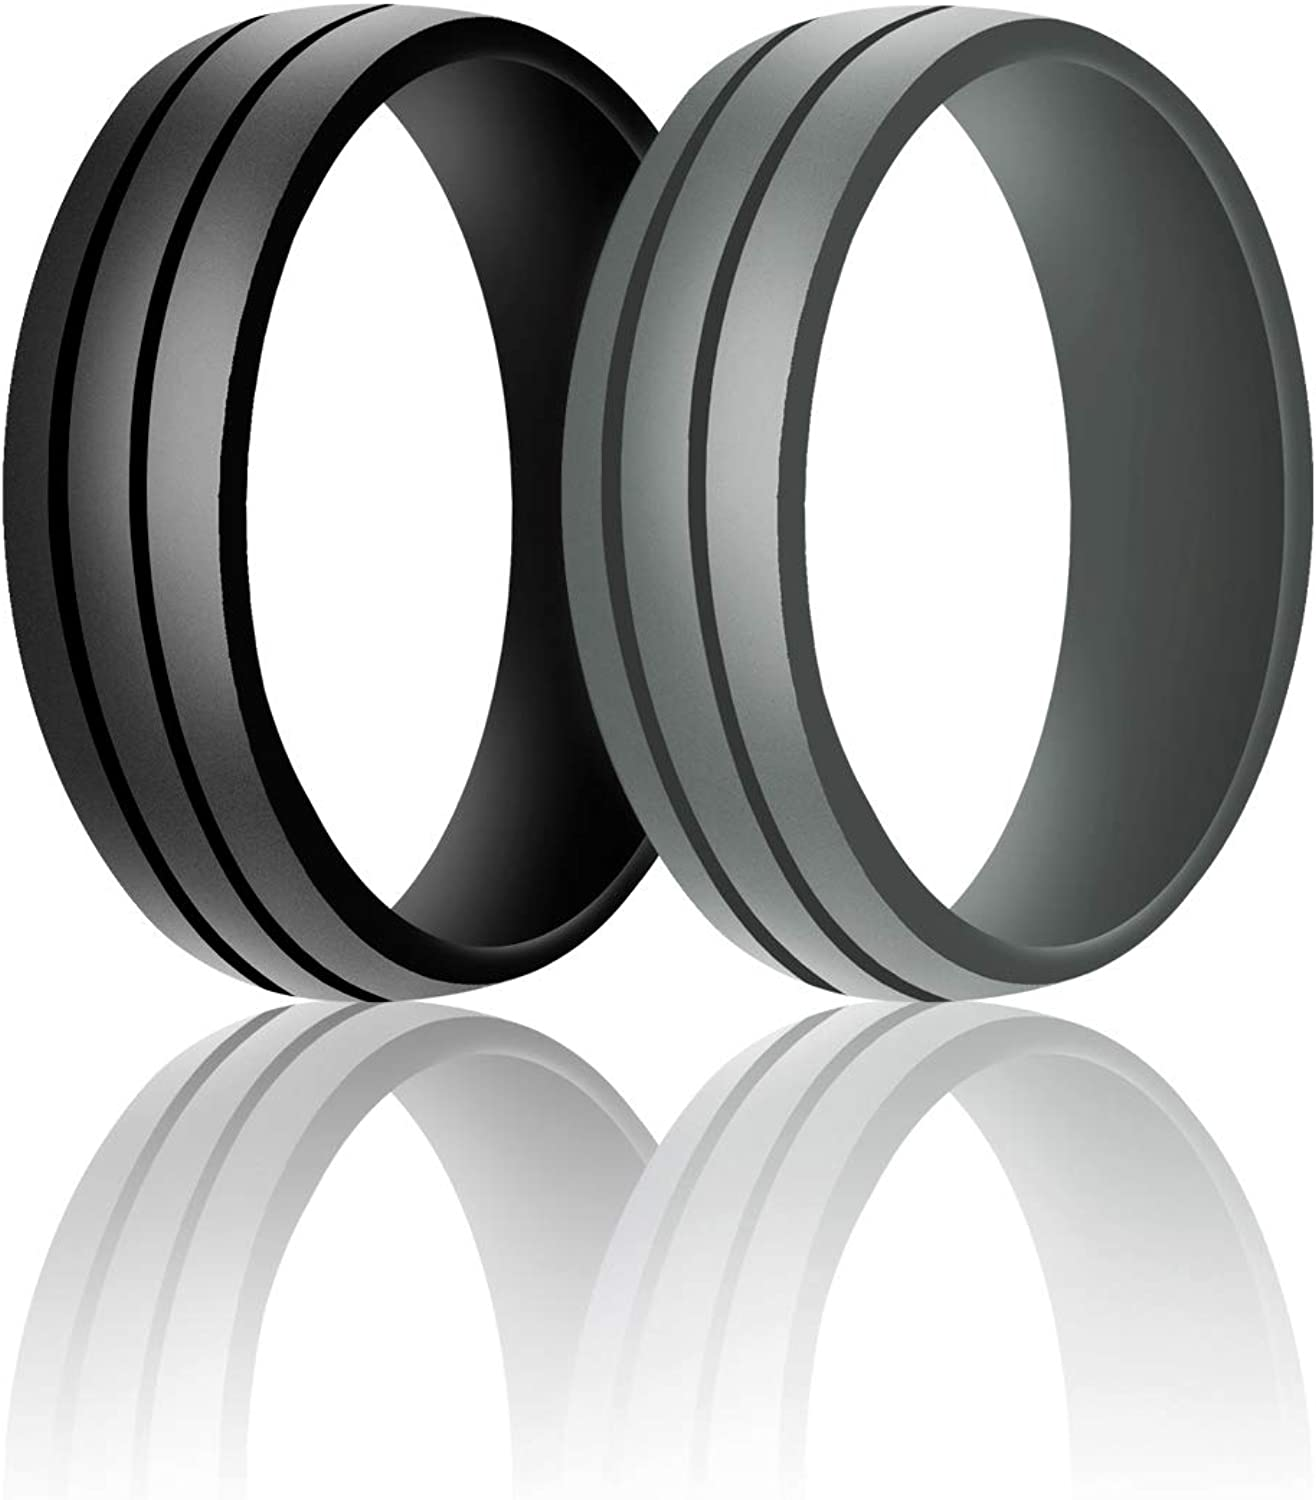 SANXIULY Mens Online limited 70% OFF Outlet product Silicone Wedding Bands for Wor RingRubber